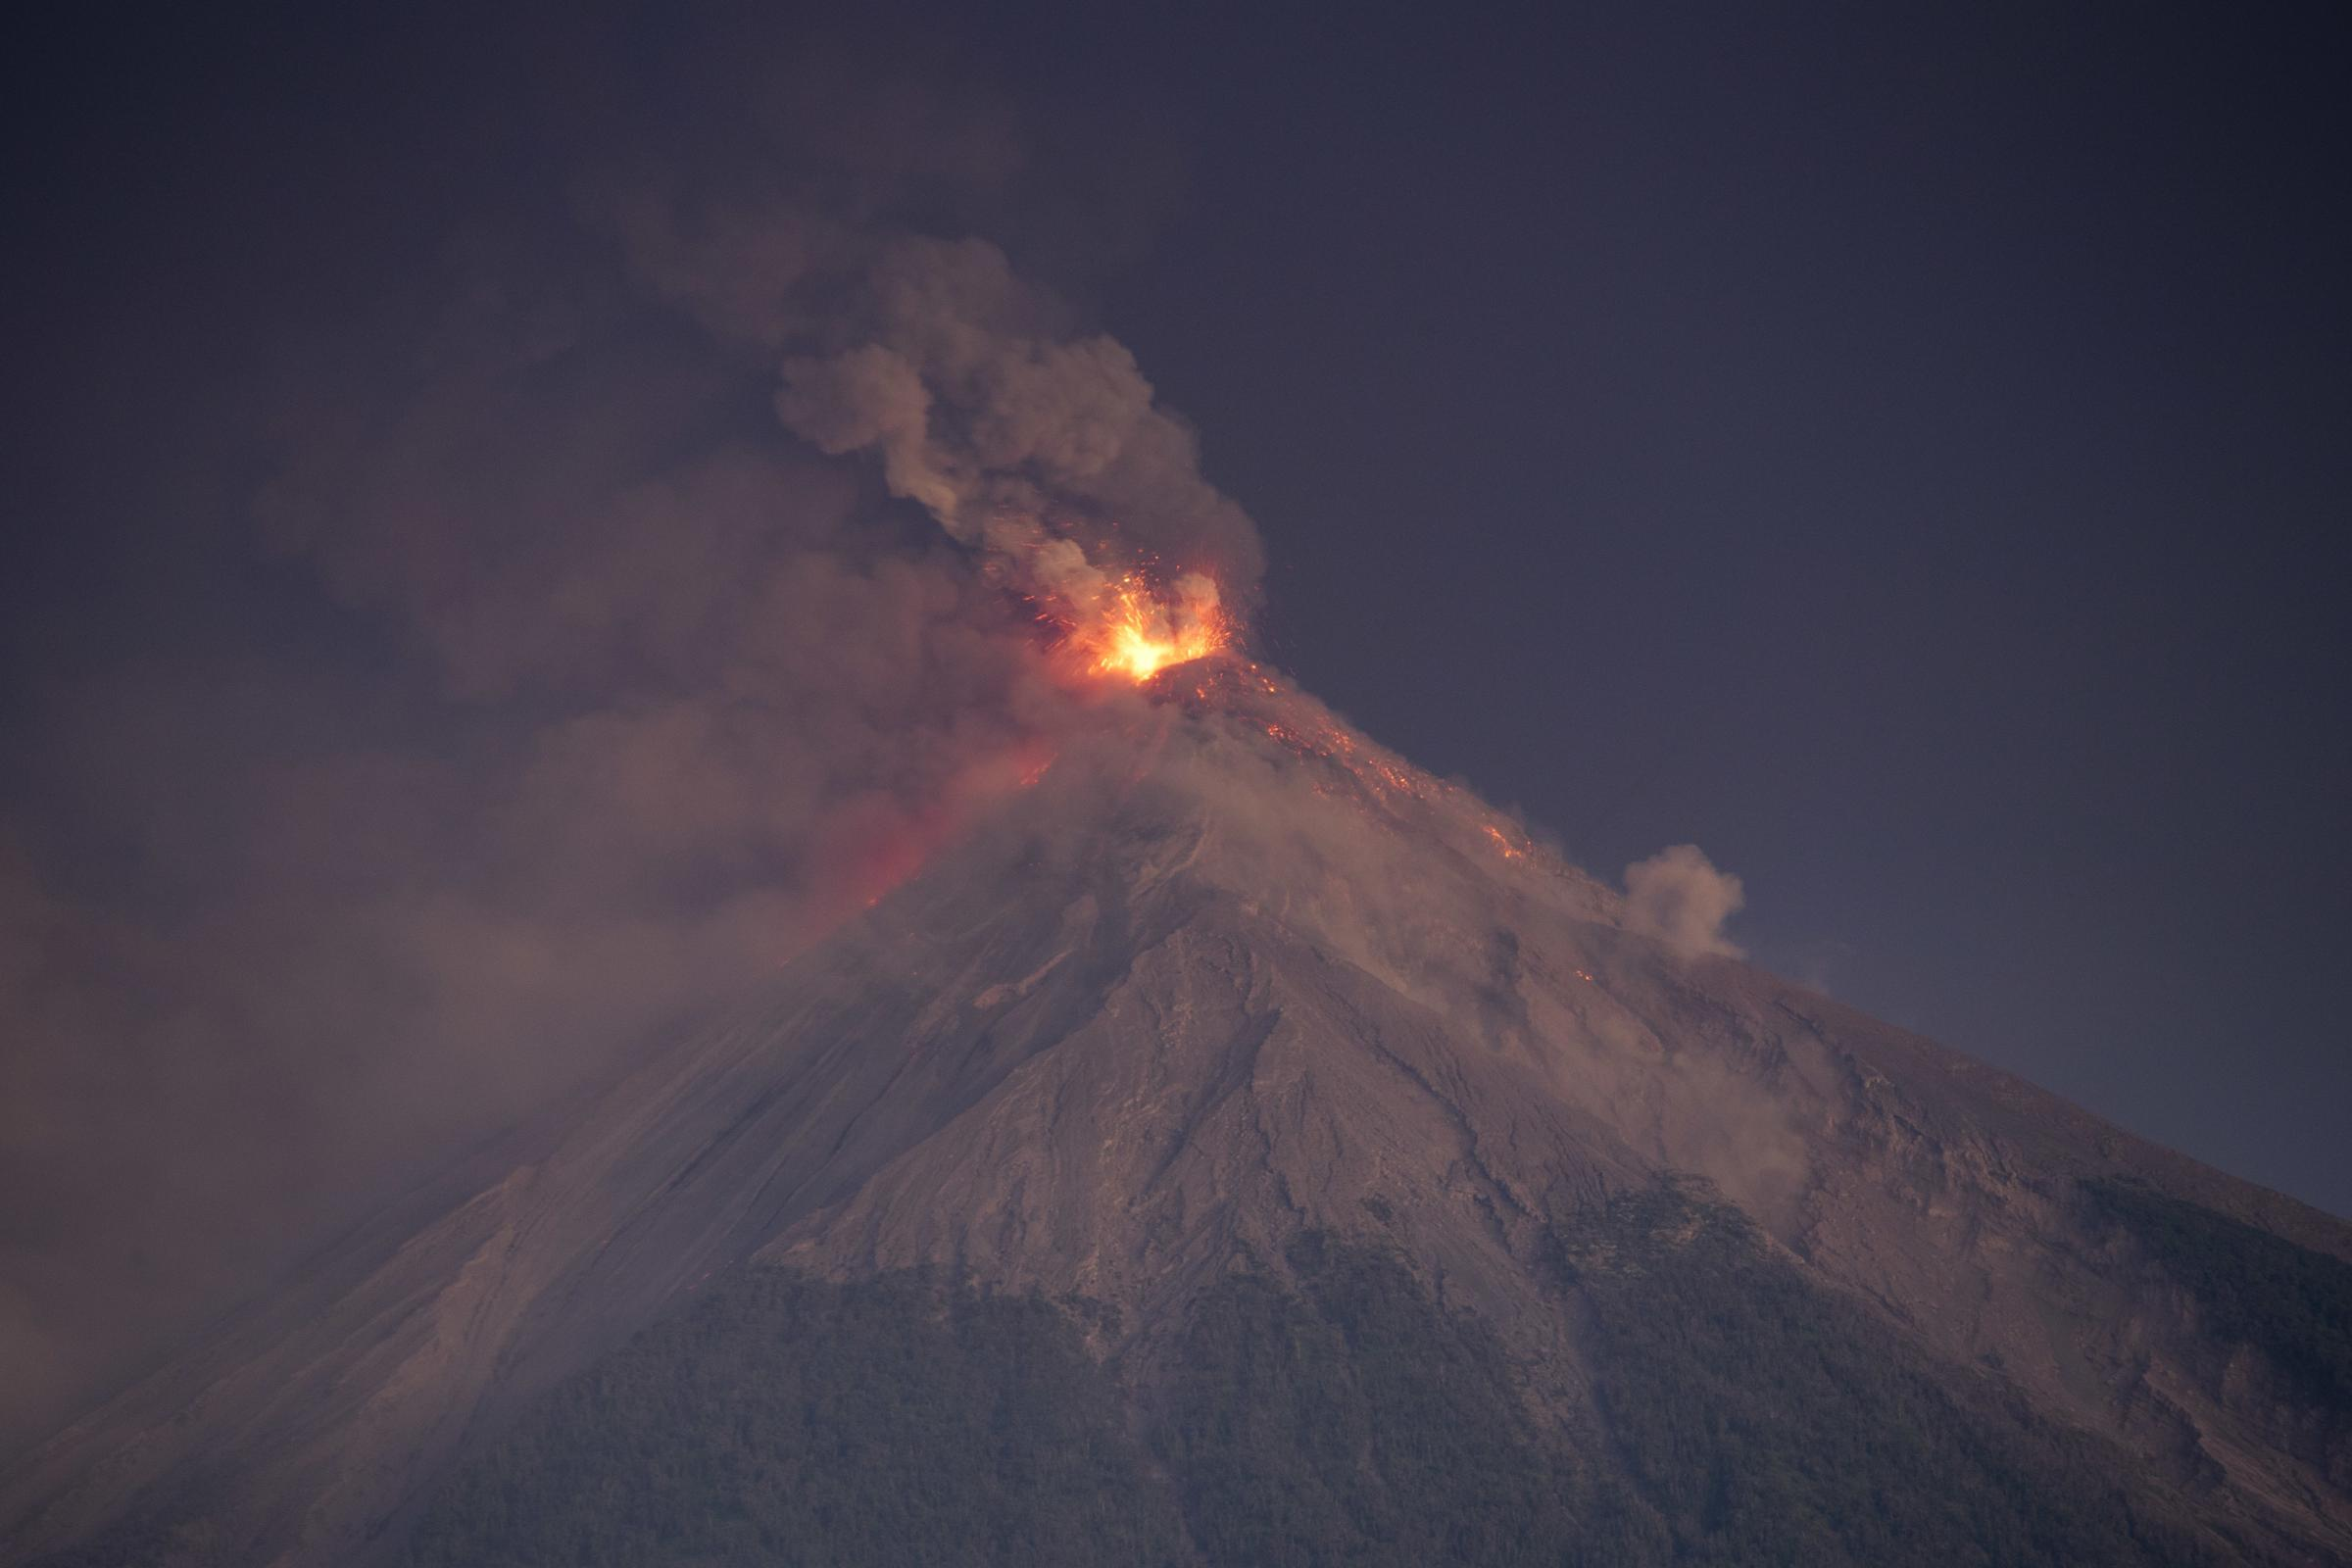 4,000 flee eruption by Guatemala's Volcano of Fire